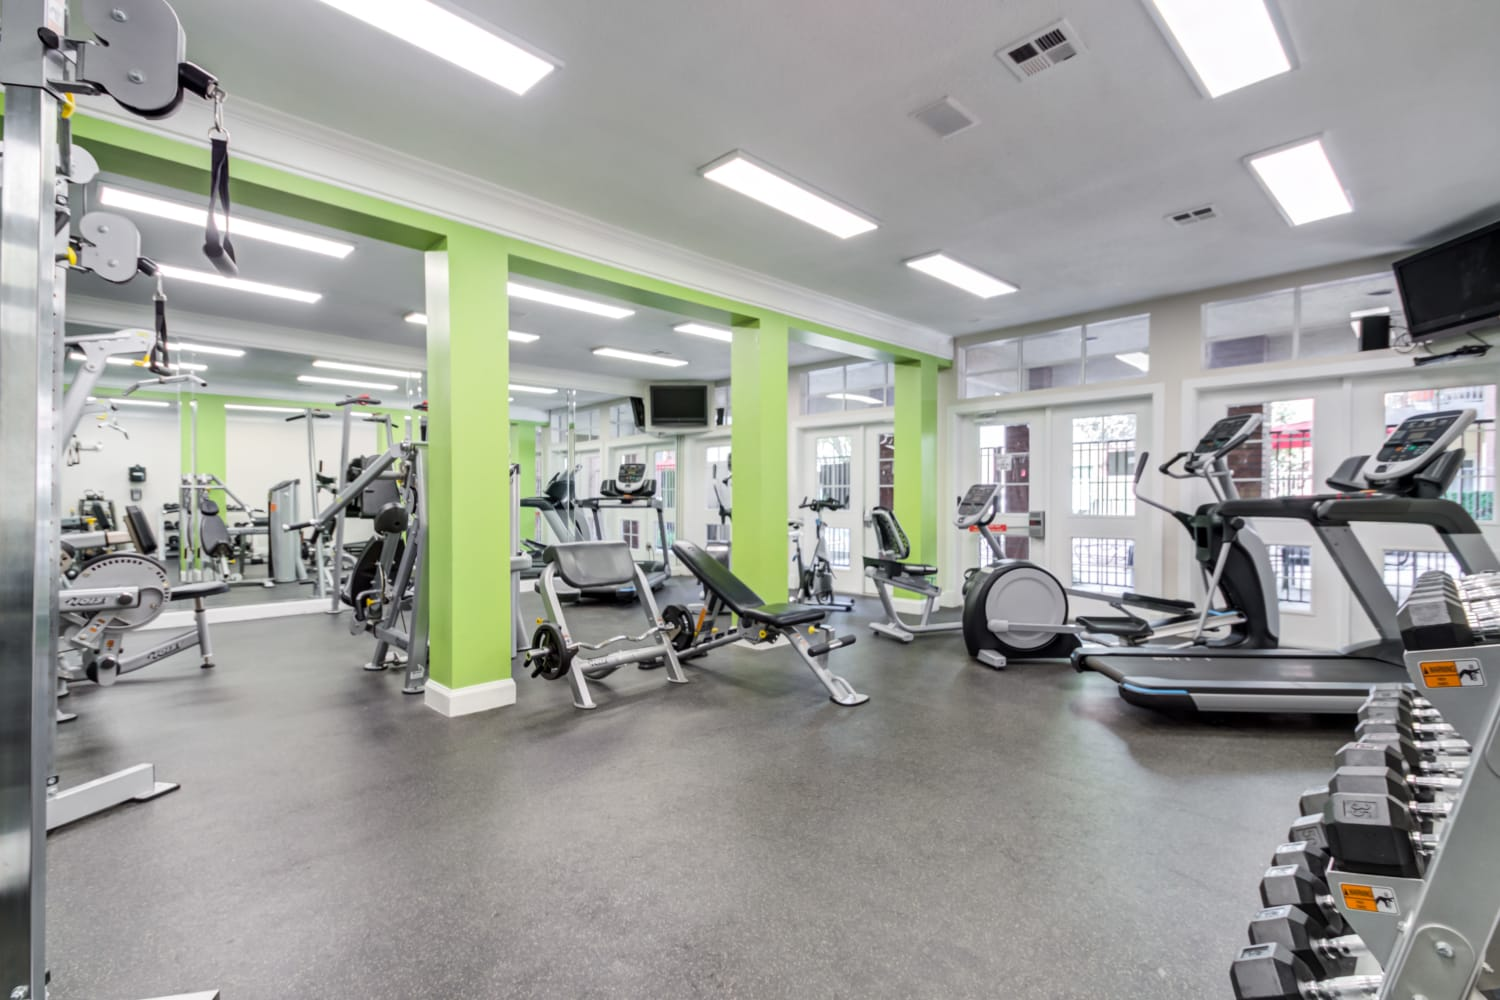 Fitness Center at Irving Schoolhouse Apartments in Salt Lake City, Utah